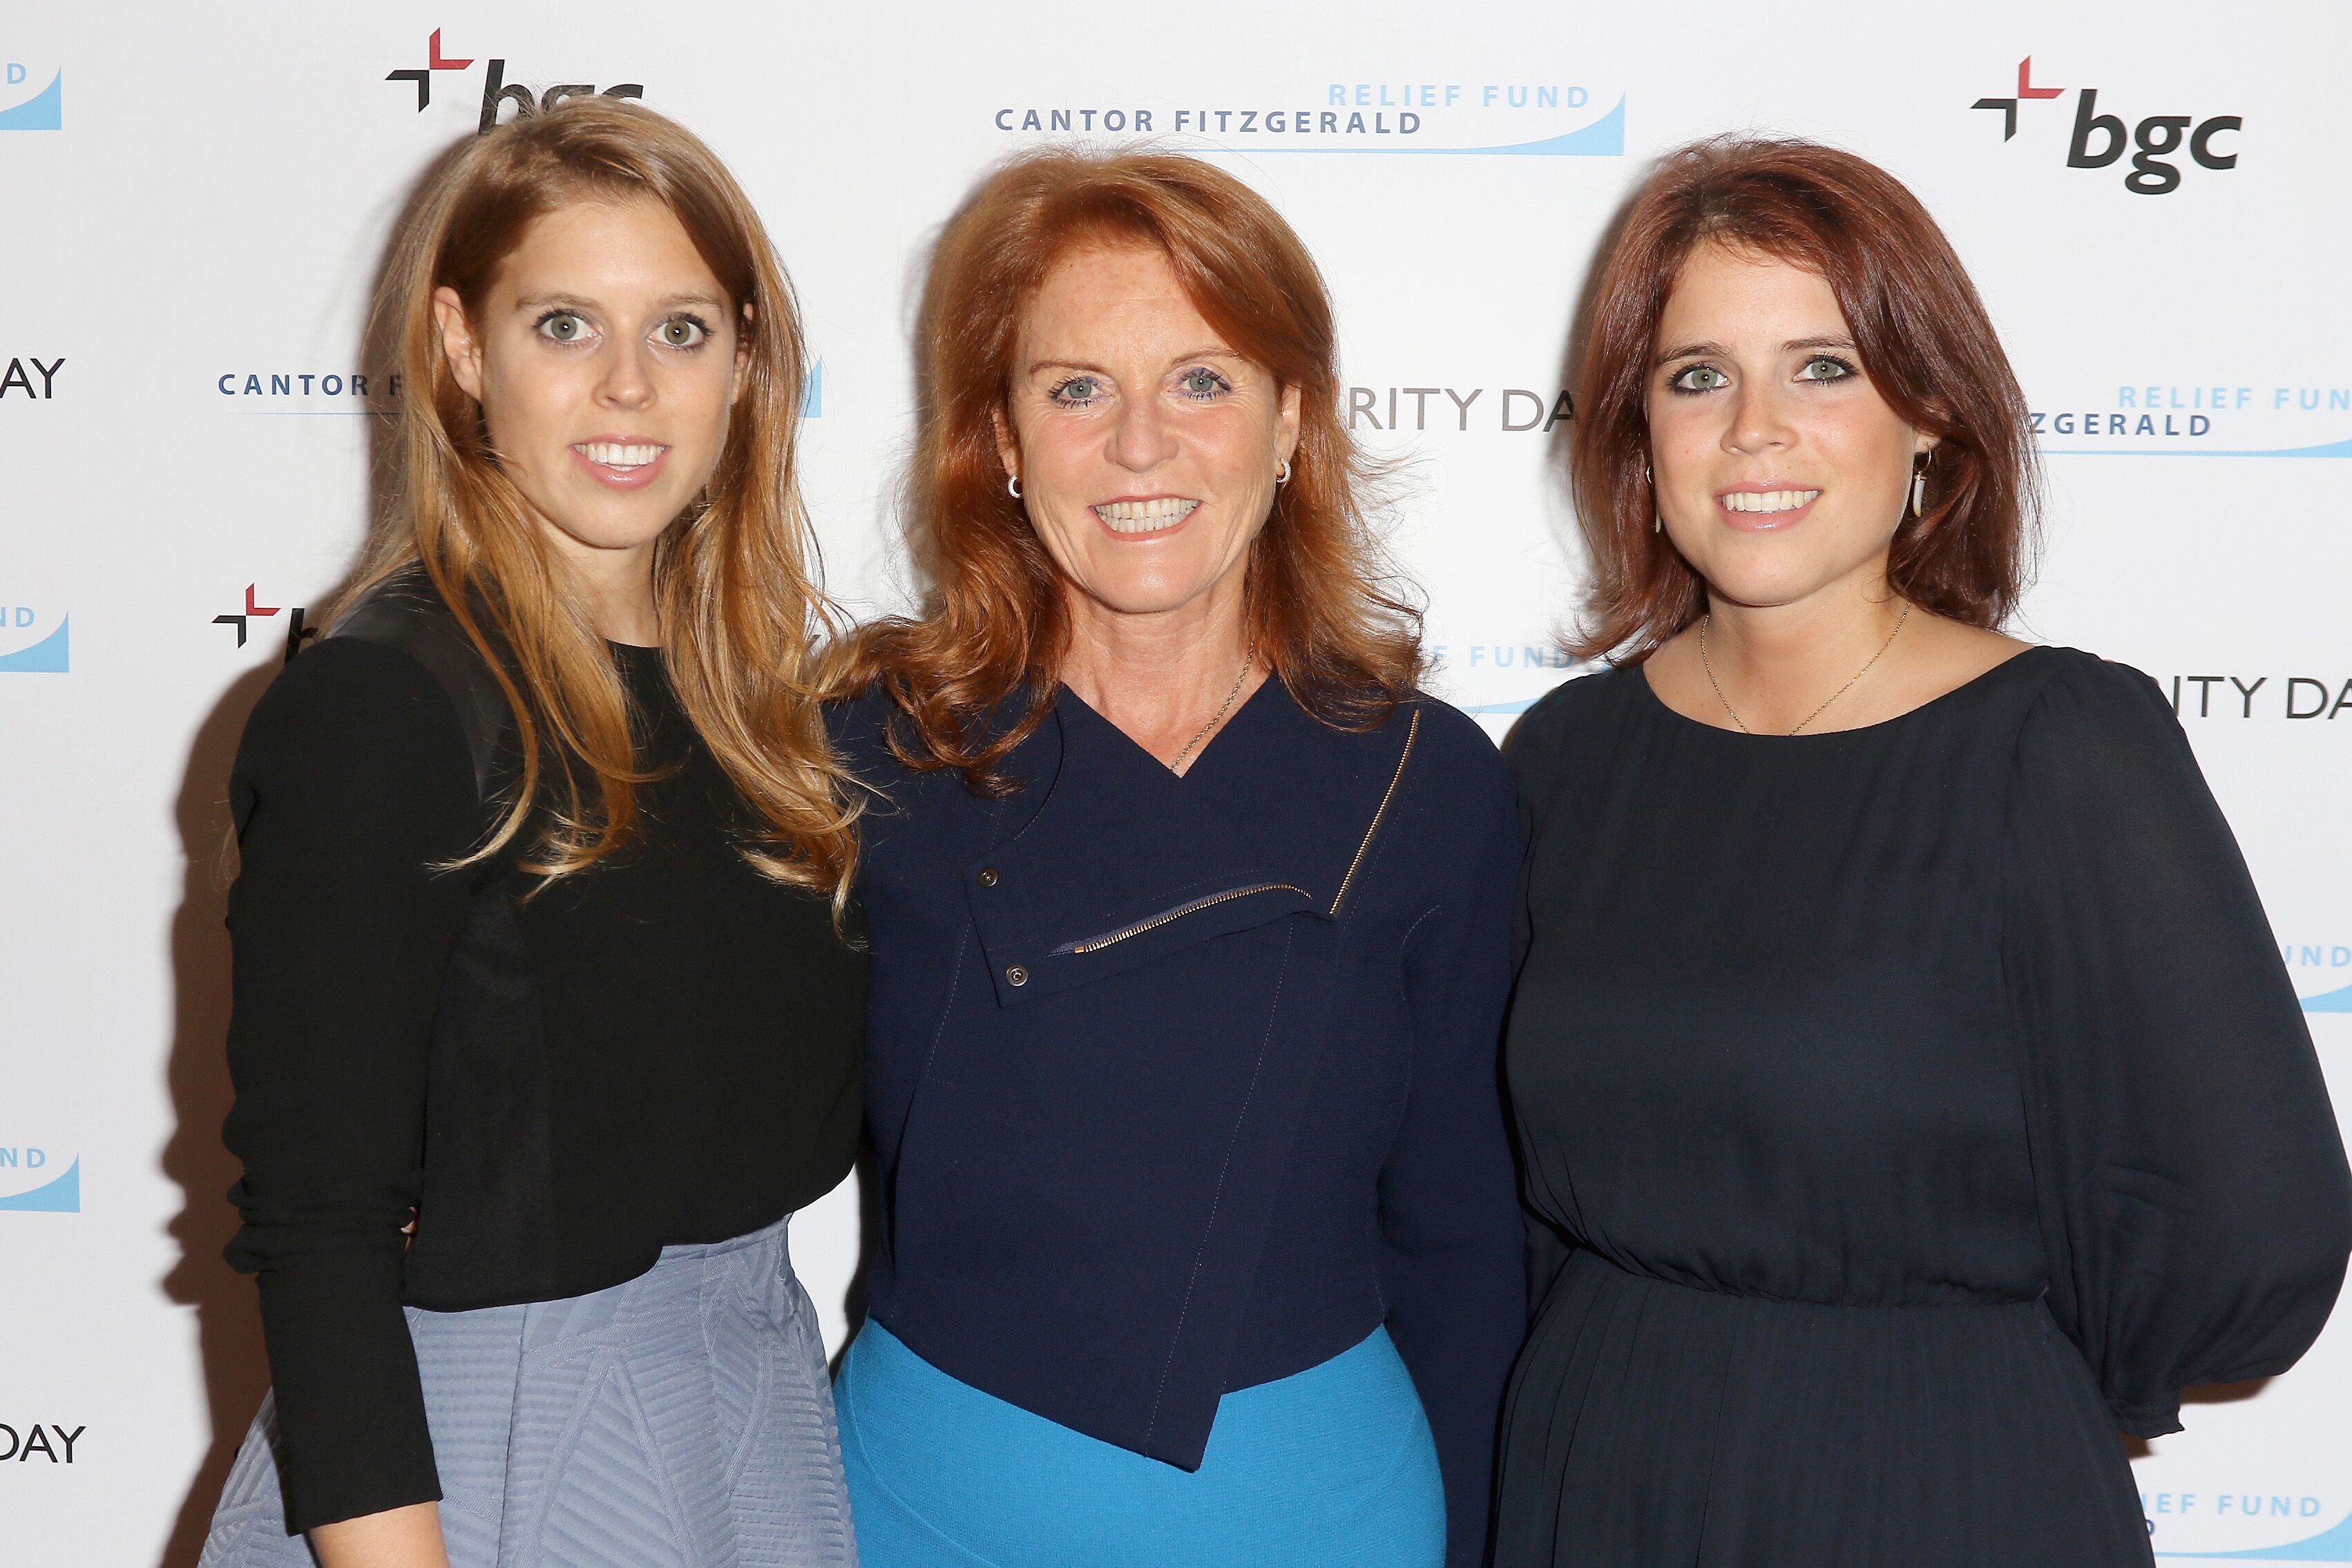 Beatrice Ferguson, Sarah Ferguson, Duchess of York, and Eugenie Ferguson attend Annual Charity Day hosted by Cantor Fitzgerald and BGC at BGC Partners, INC on September 11, 2015 in New York City | Photo: Getty Images